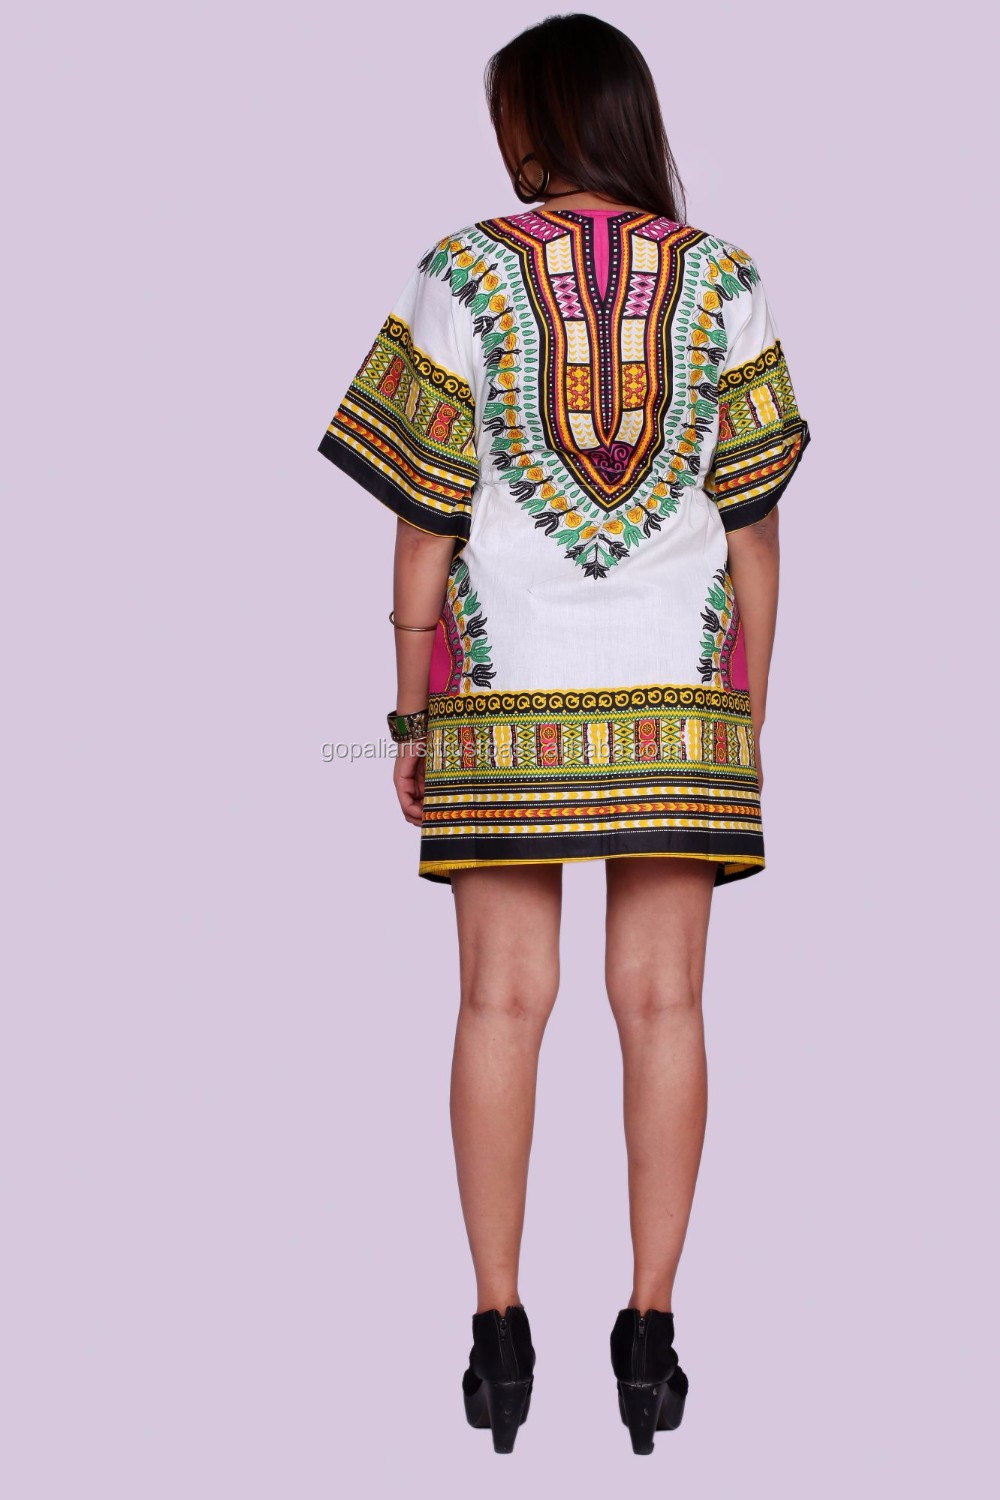 dcf304c4390 Indian Latest Women African Tradition Dashiki Print Sun Dress Kaftan Maxi  Plus size White 4X